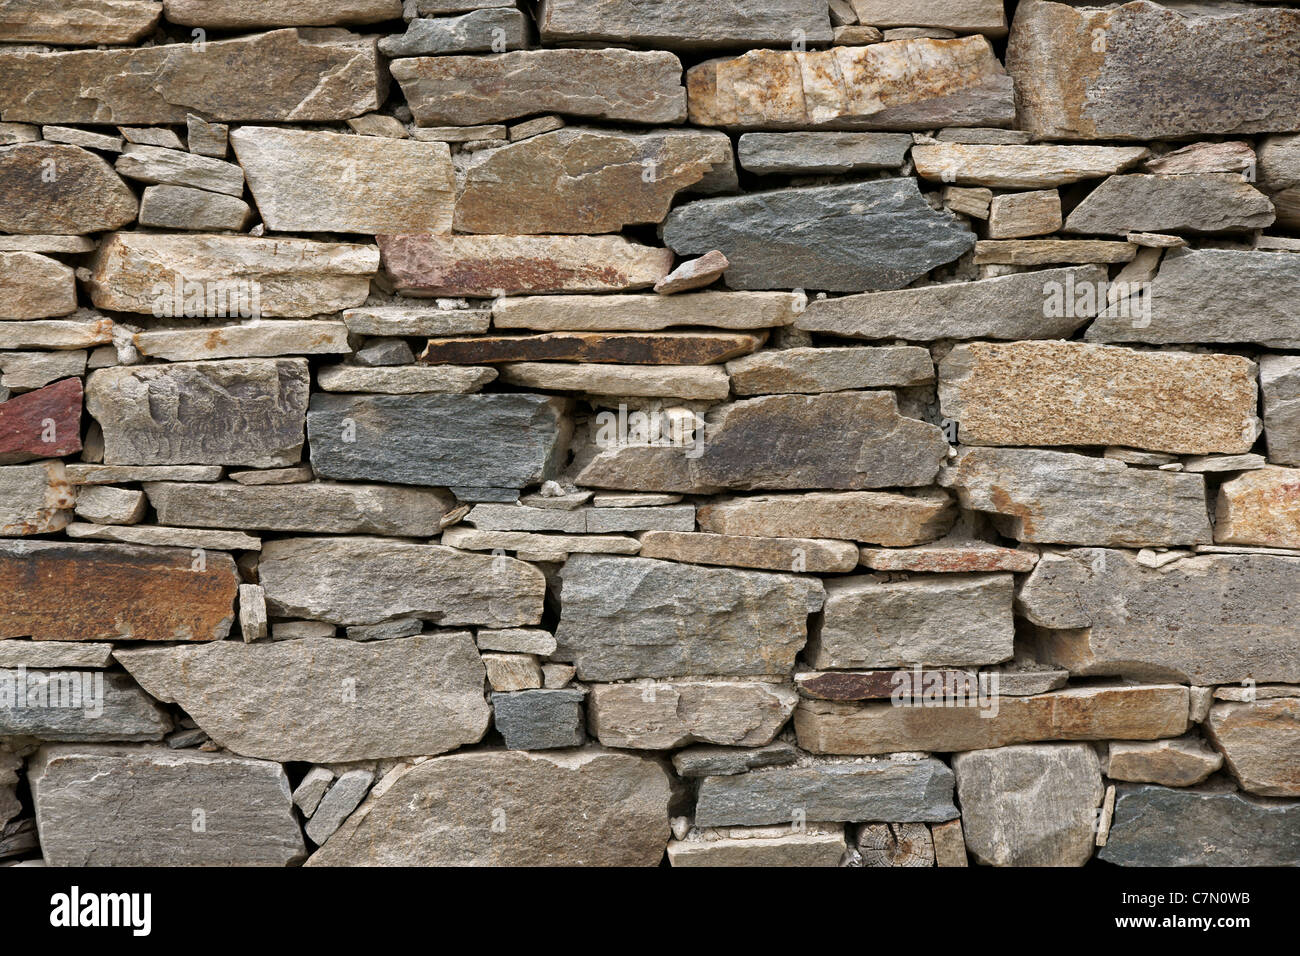 Stone wall texture for designers and 3d artists - Stock Image